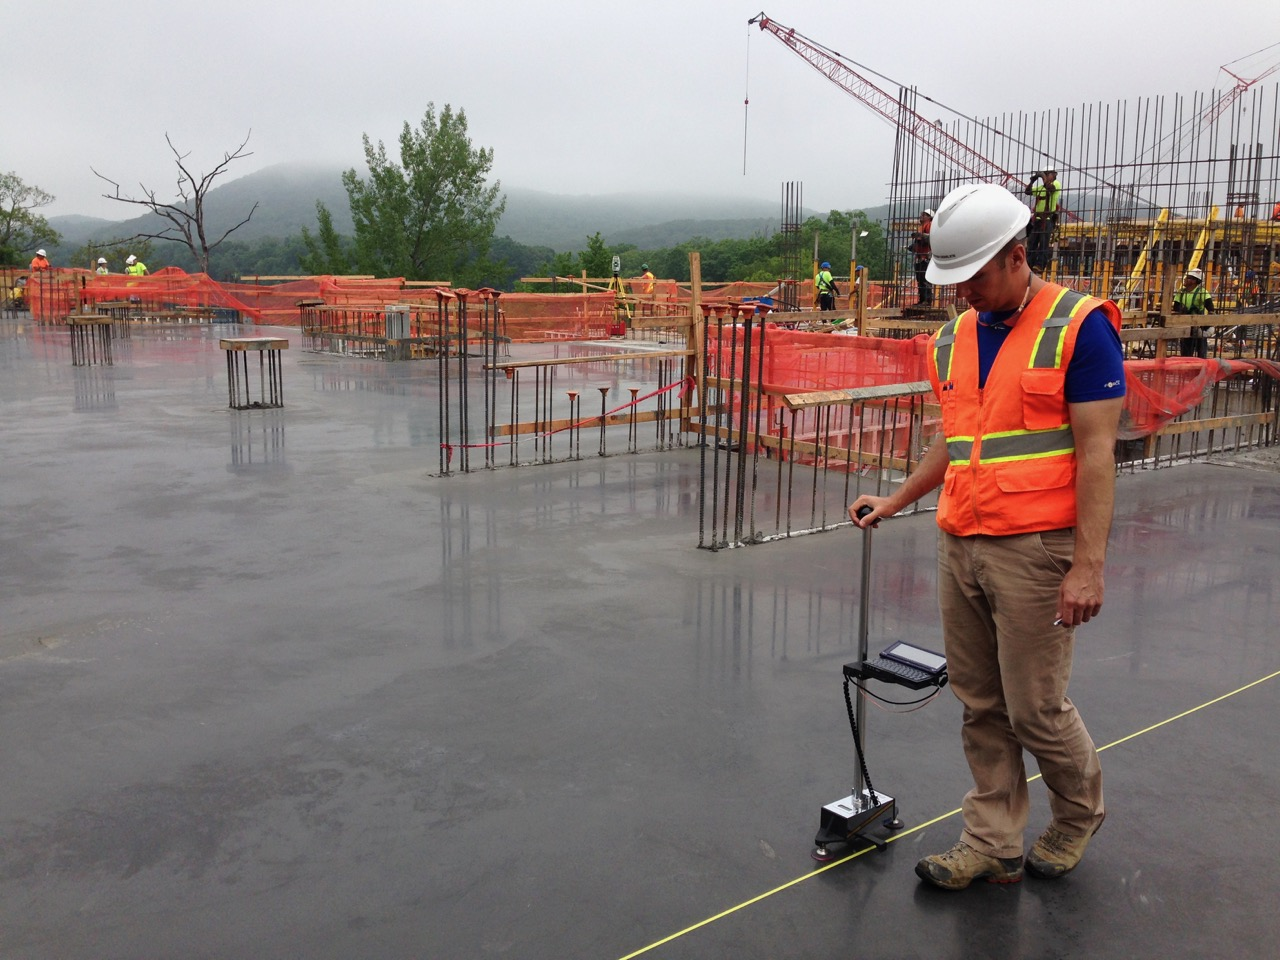 technician for construction materials testing and inspections